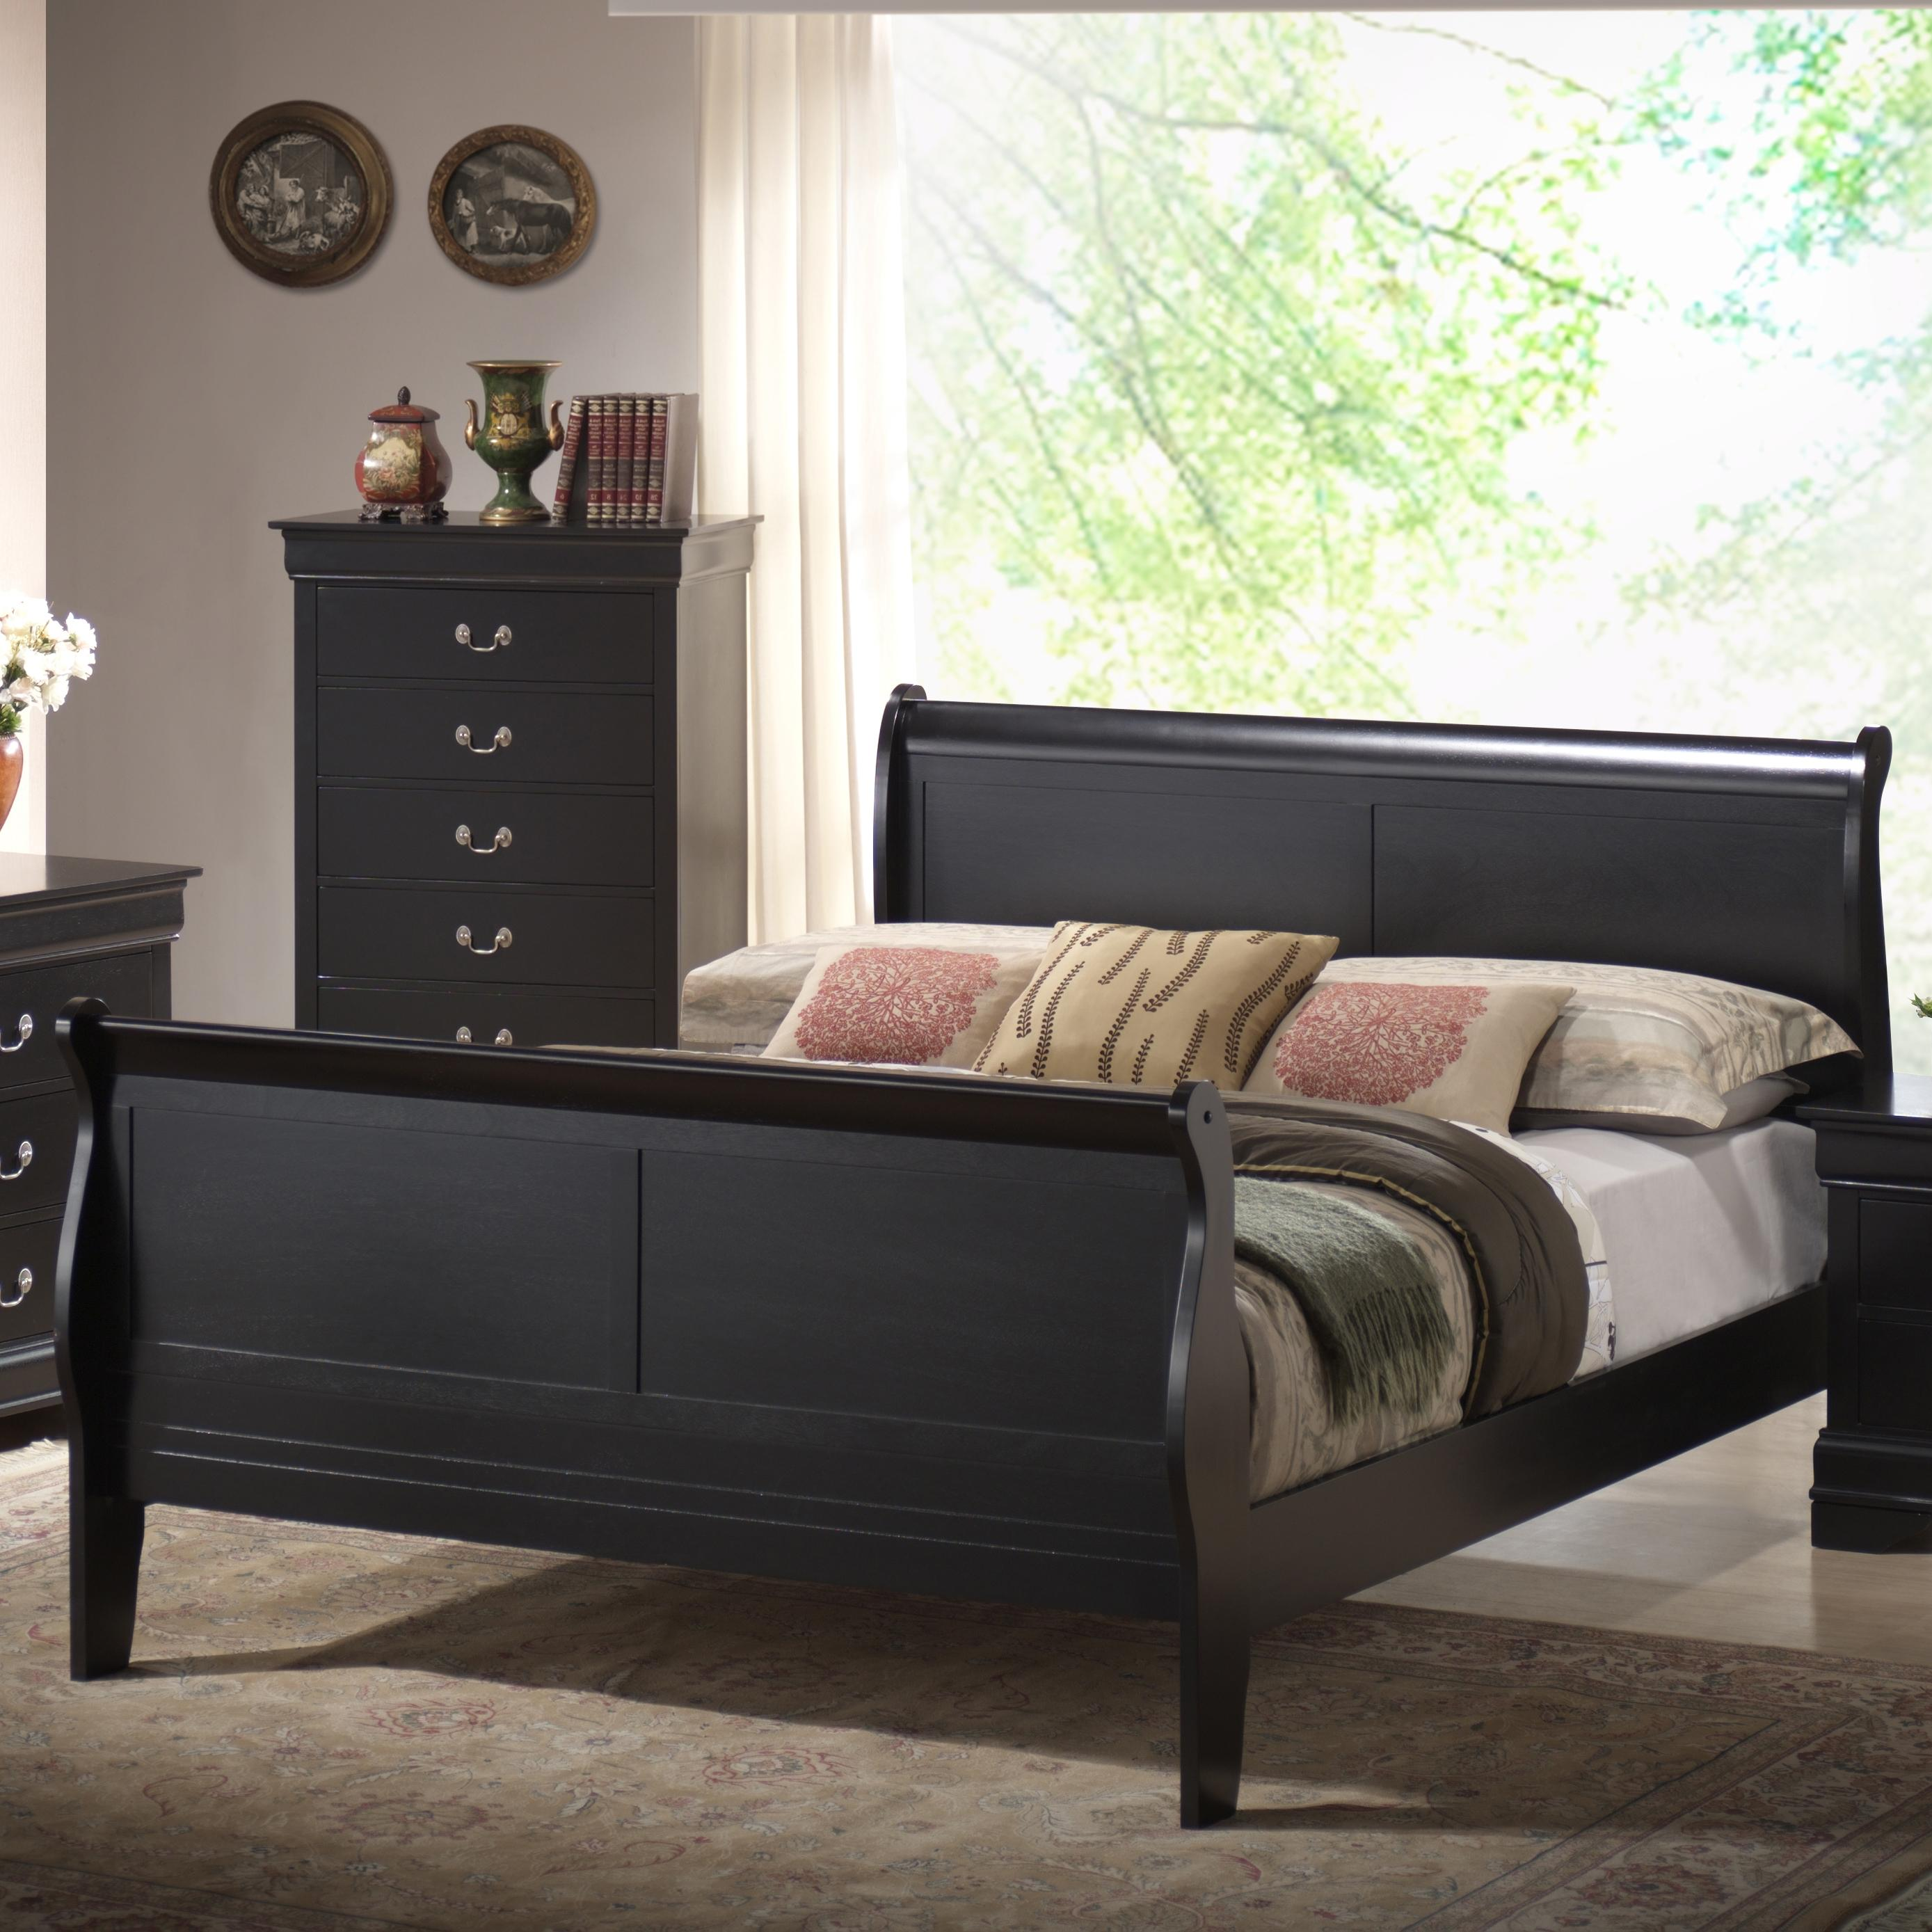 Lifestyle Louis Phillipe Twin Sleigh Bed - Item Number: C5934A-TSA-XXBL+TXP-XXBL